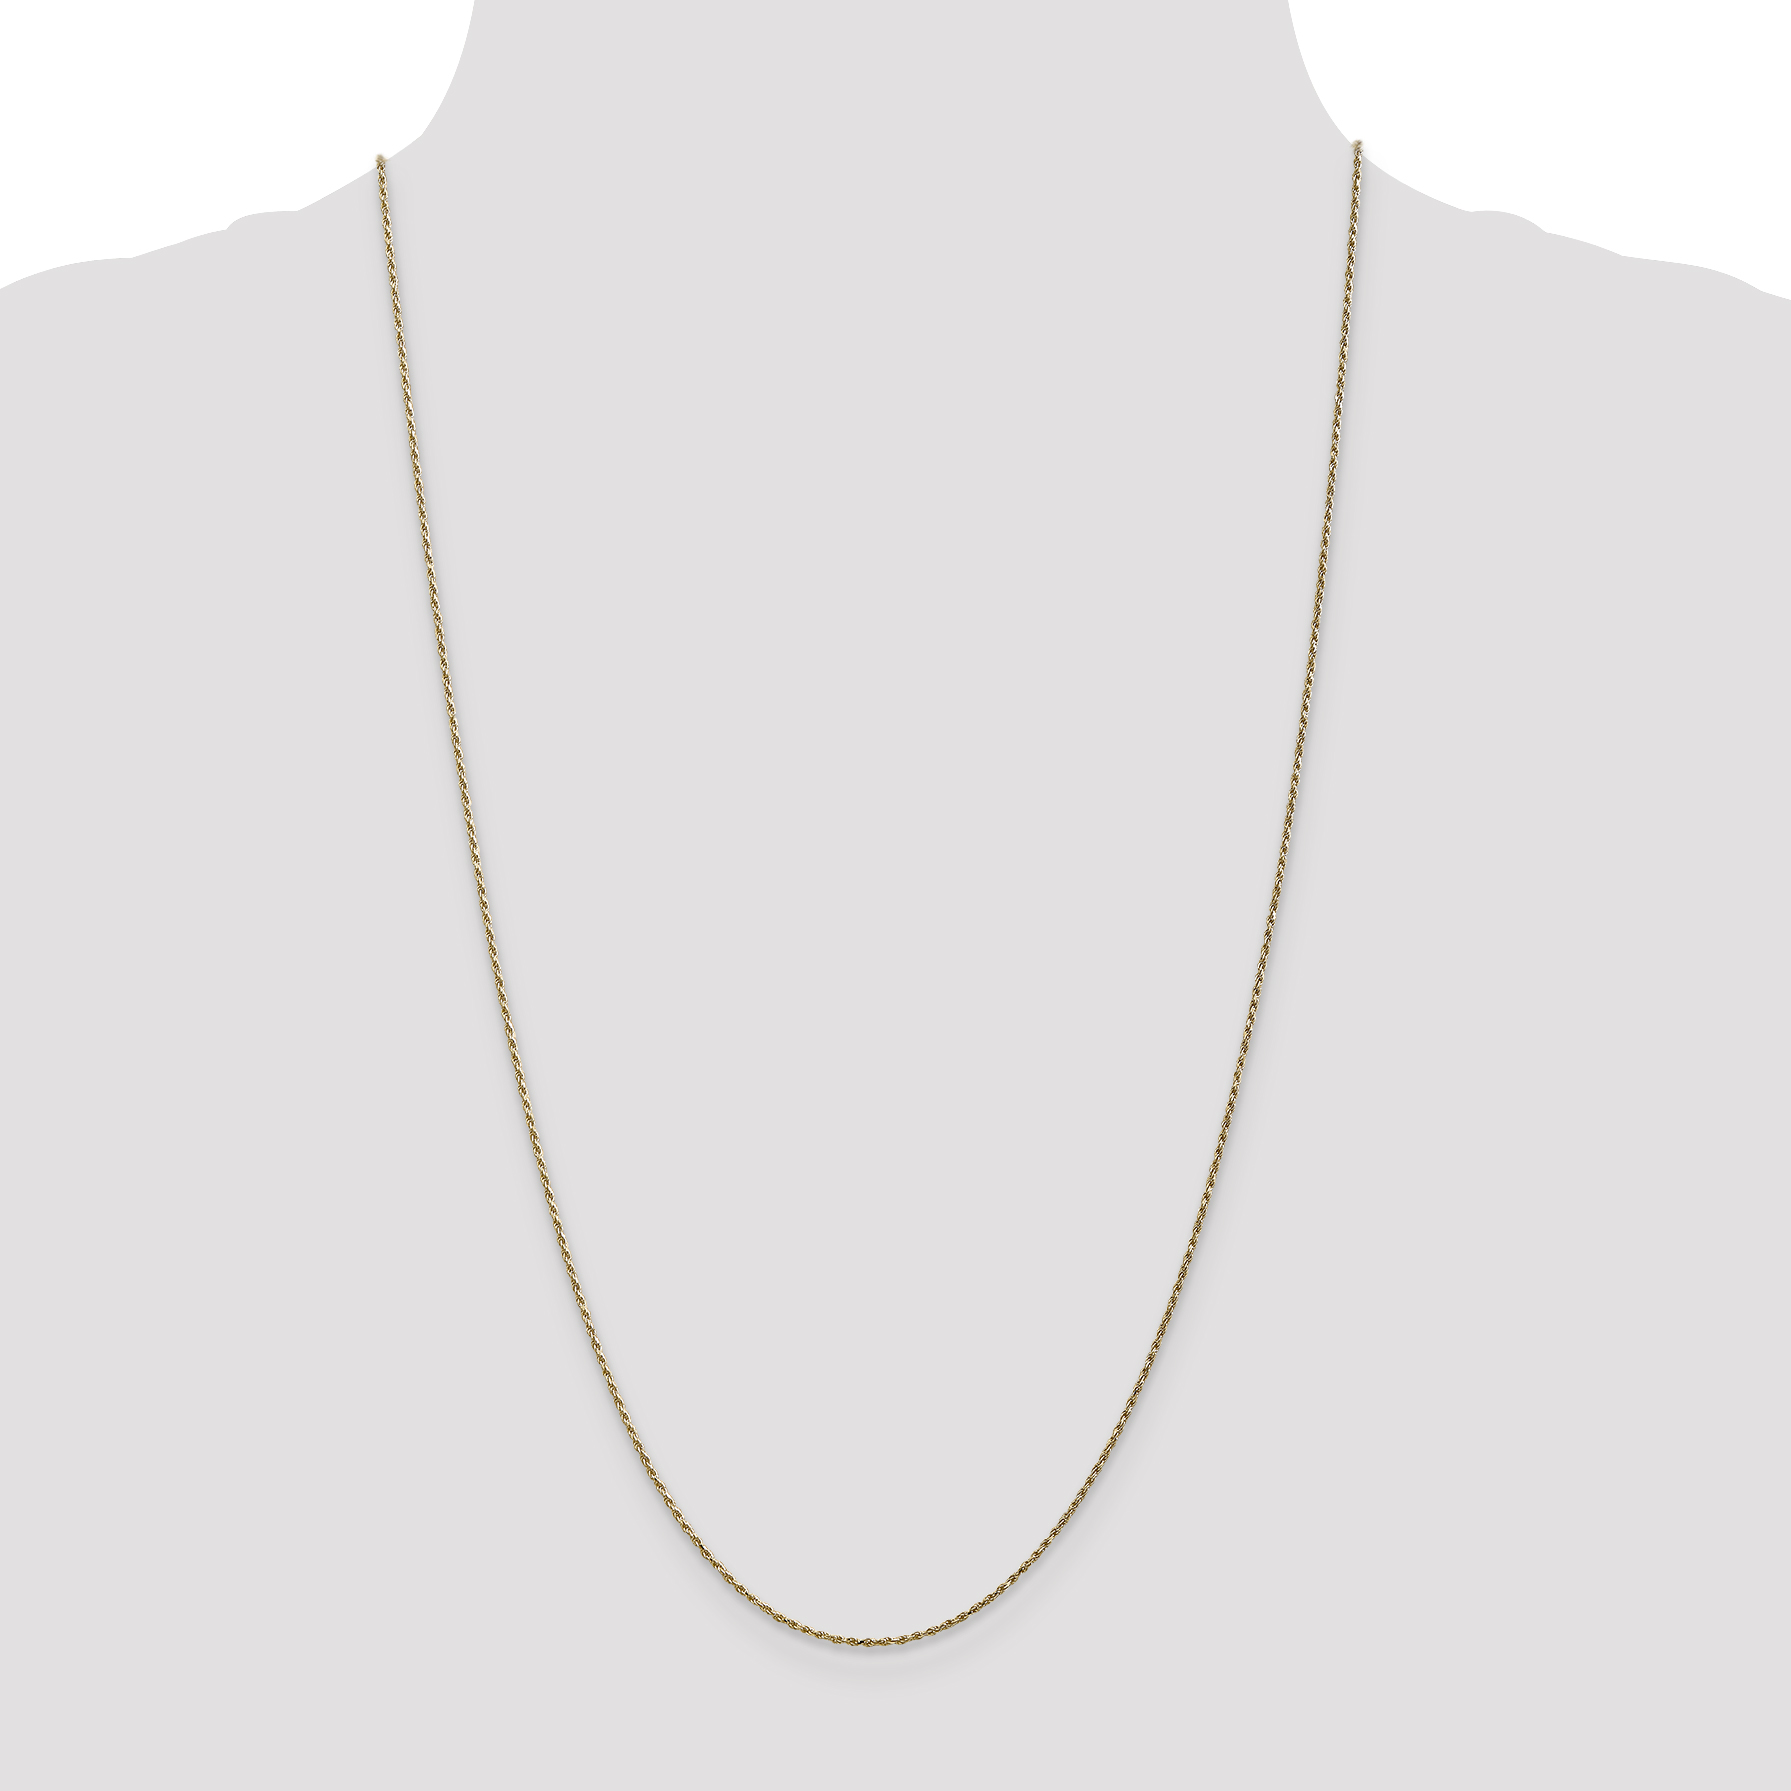 14K Yellow Gold 1.15mm Machine-Made Rope Chain 18 IN - image 1 de 5